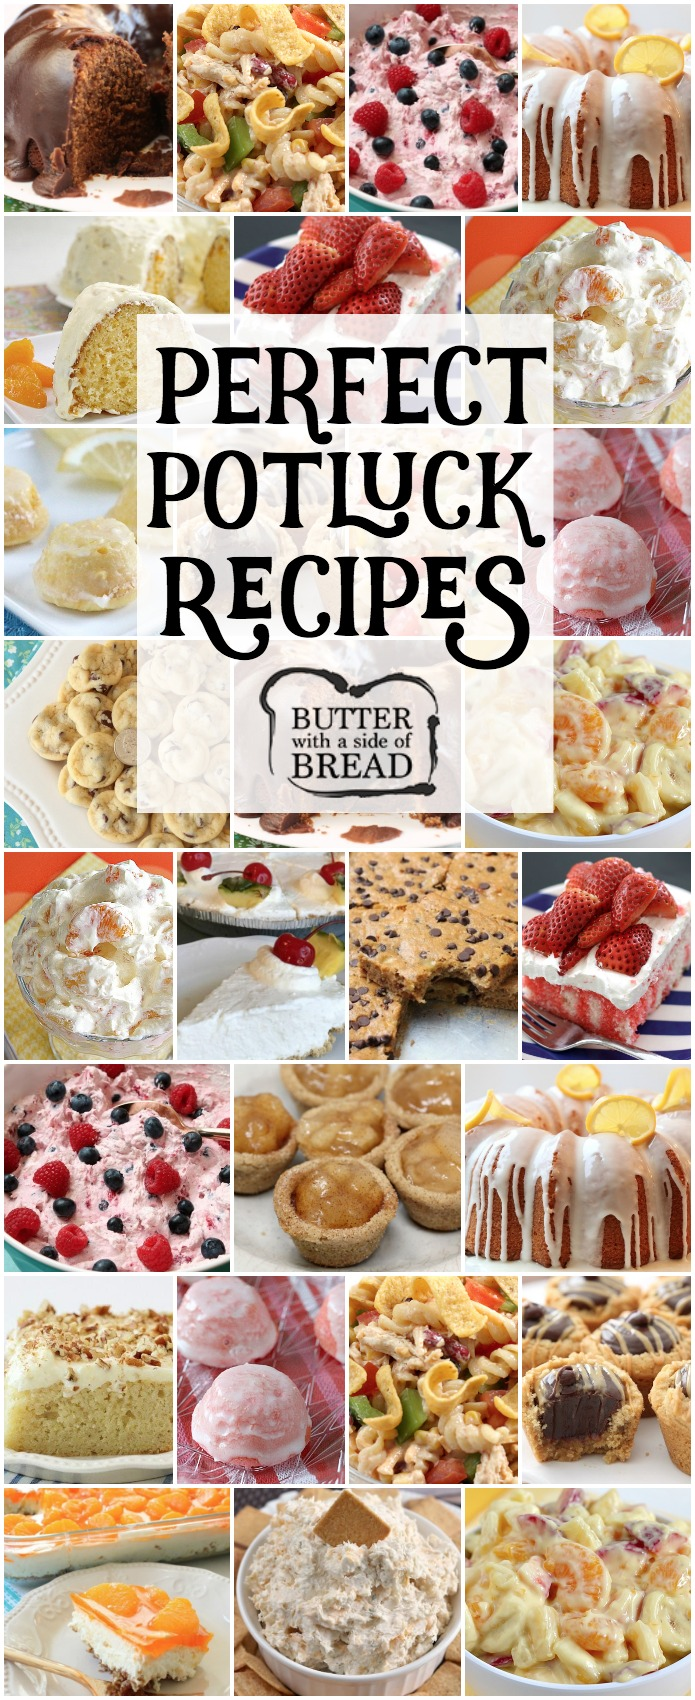 Our favorite POTLUCK RECIPES all in one place! Includes our popular recipes for Fiesta Ranch Chicken Pasta Salad, Lemon Cake Drops, Chocolate Chip Banana Bars, Orange Cream Fruit Salad and more. Perfect recipes for planning your next #potluck dinner or lunch. Recipes from Butter With A Side of Bread #food #recipe #potlucks #potluck #lunch #summer